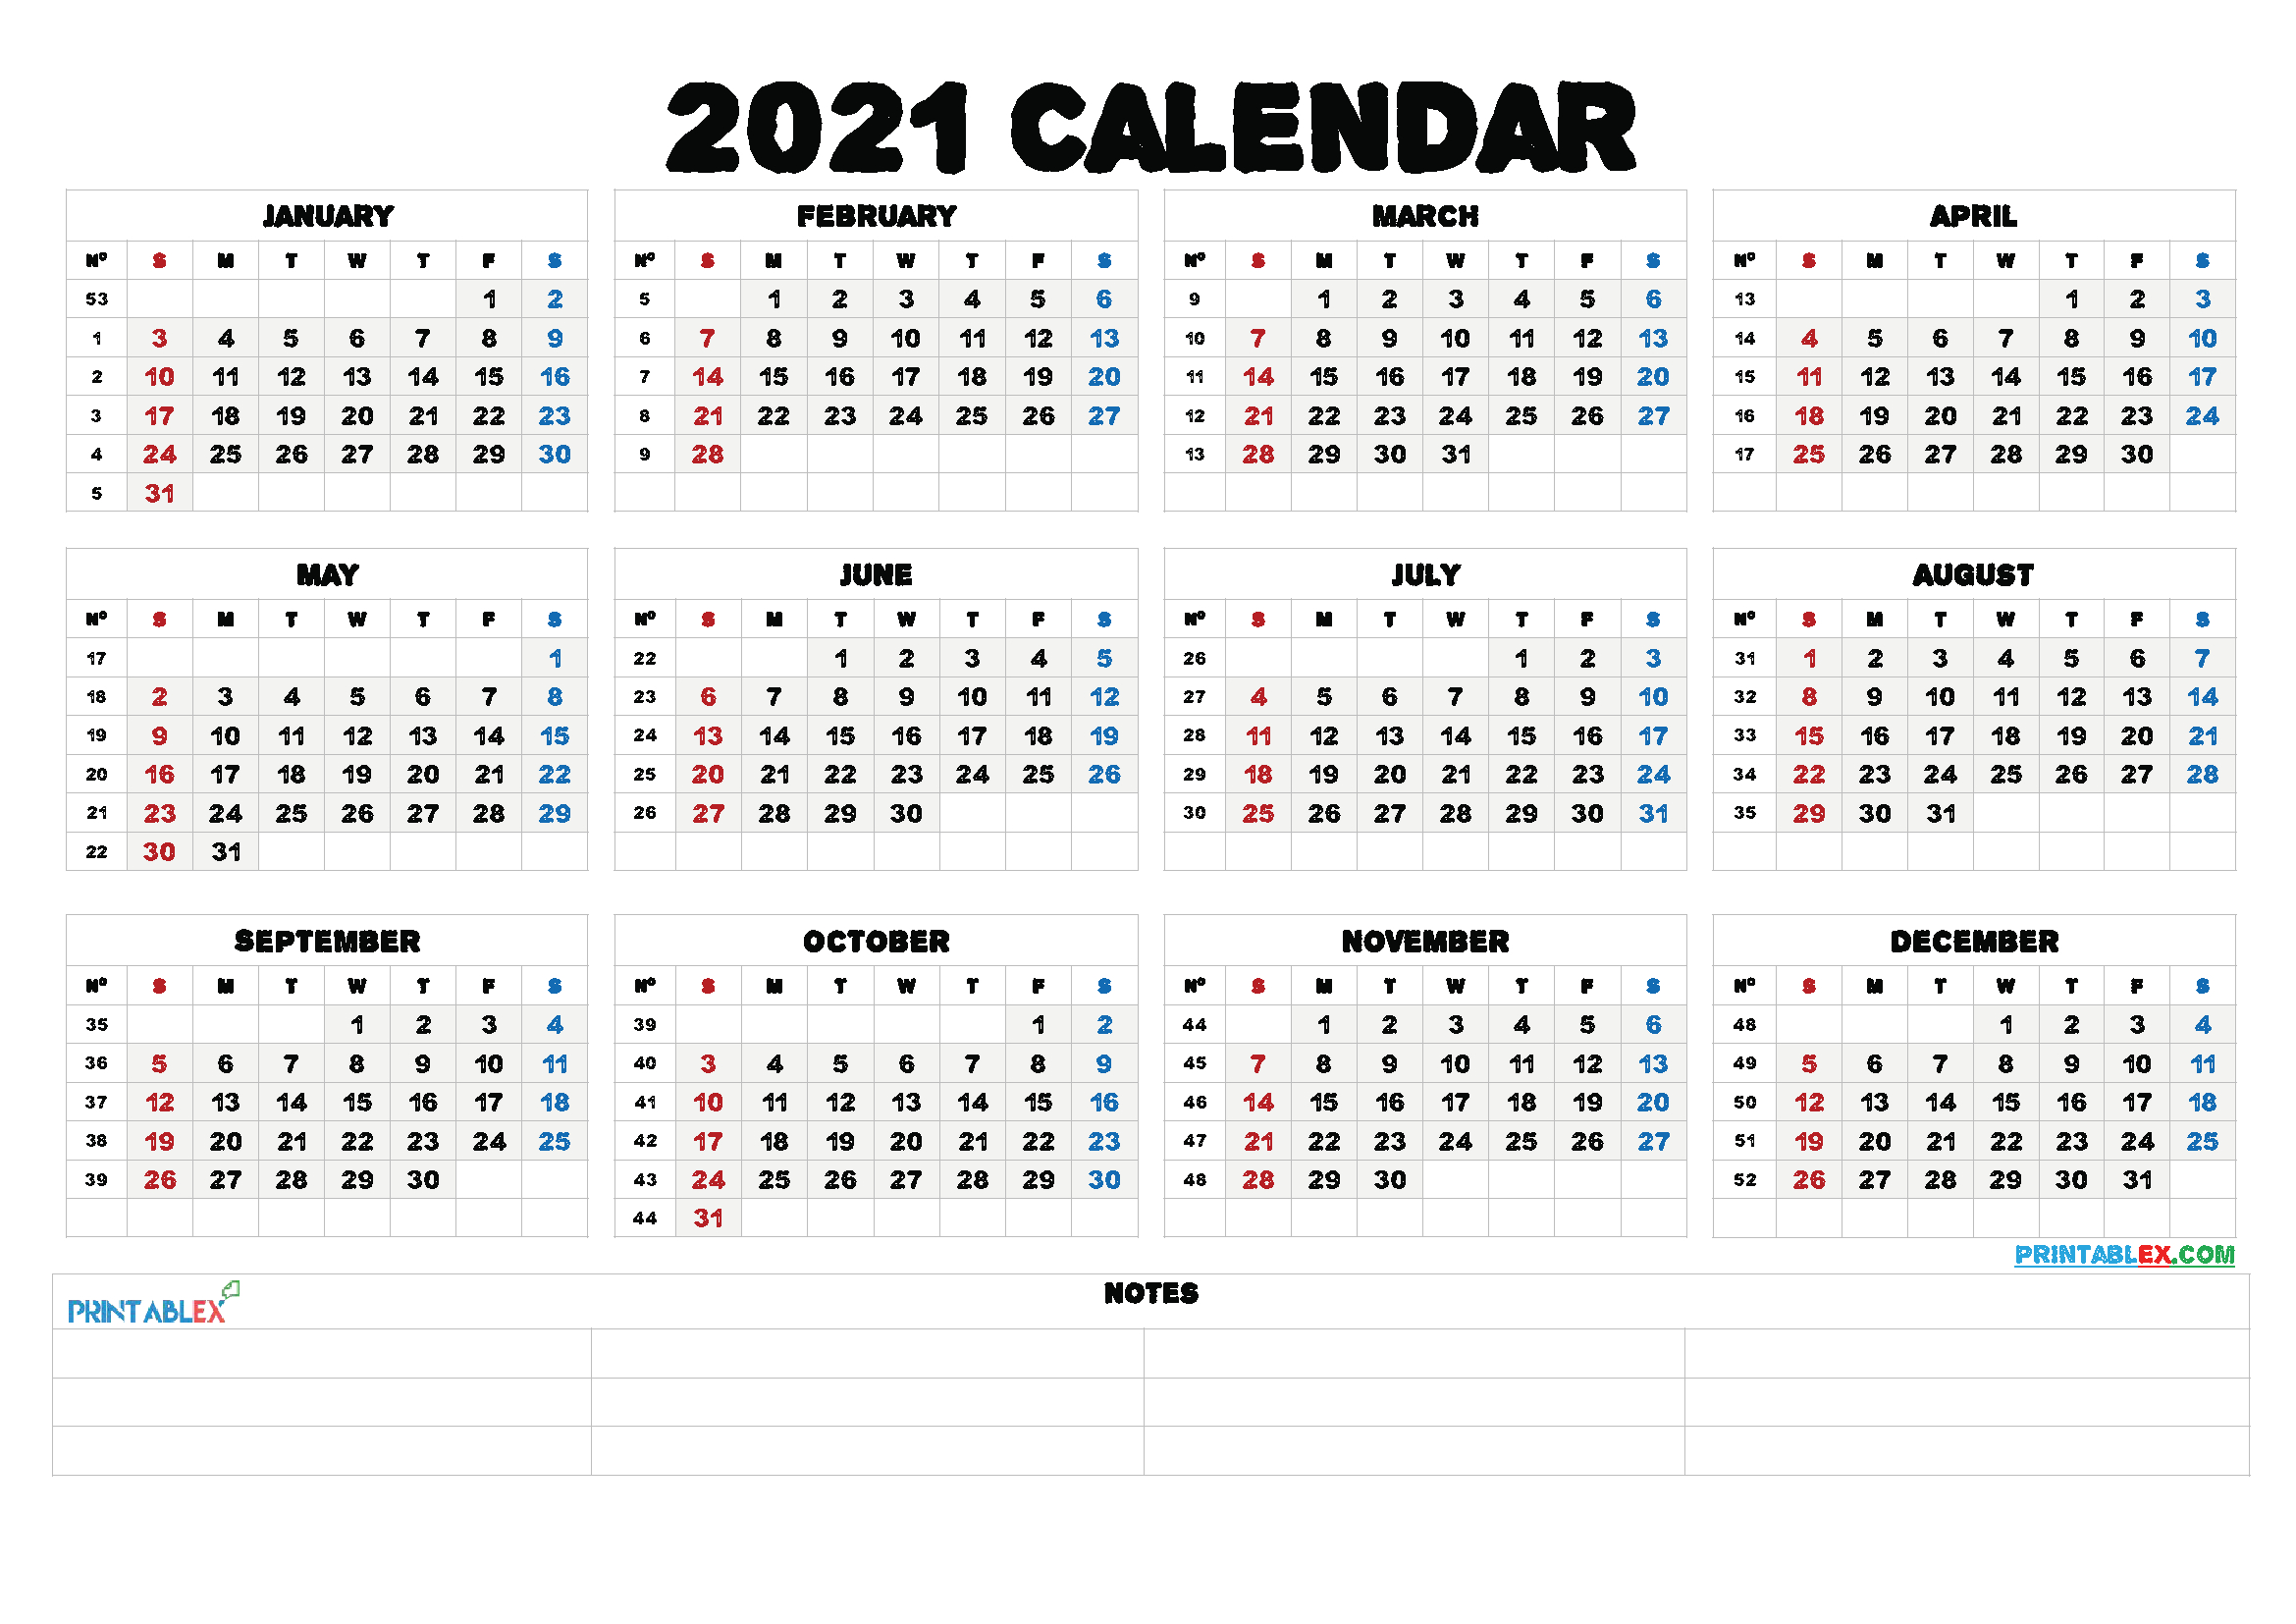 Free Printable 2021 Yearly Calendar With Week Numbers – Free inside Monthly Calendar By Week Number 2021